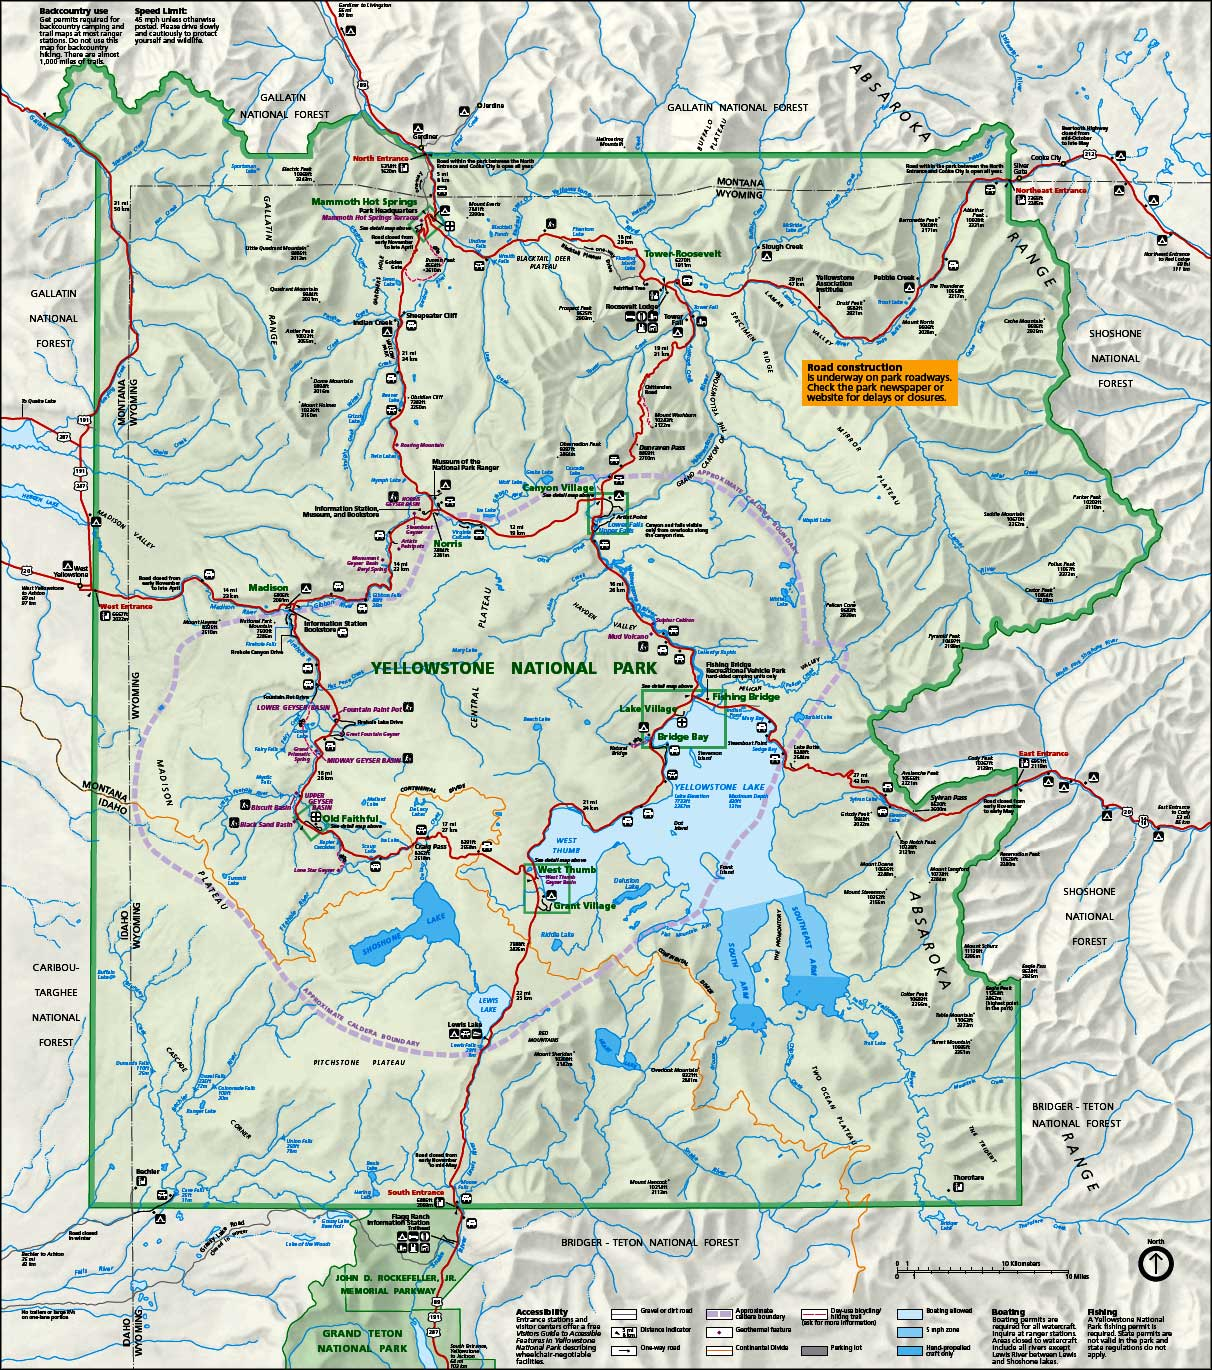 Map of Yellowstone National Park - TravelsFinders.Com ® Yellowstone National Park Road Map on sawtooth national forest road map, national park to park highway map, bridger teton national forest road map, denali national park and preserve road map, wyoming road map, yellowstone geyser map, manufacturing by state map, pawnee national grasslands road map, detailed idaho road map, wyoming state map, gallatin national forest road map, yellowstone river old map, helena national forest road map, utah road map, black hills national forest road map, west yellowstone road map, kisatchie national forest road map, yellowstone driving map, kings canyon national park road map, north yellowstone map,